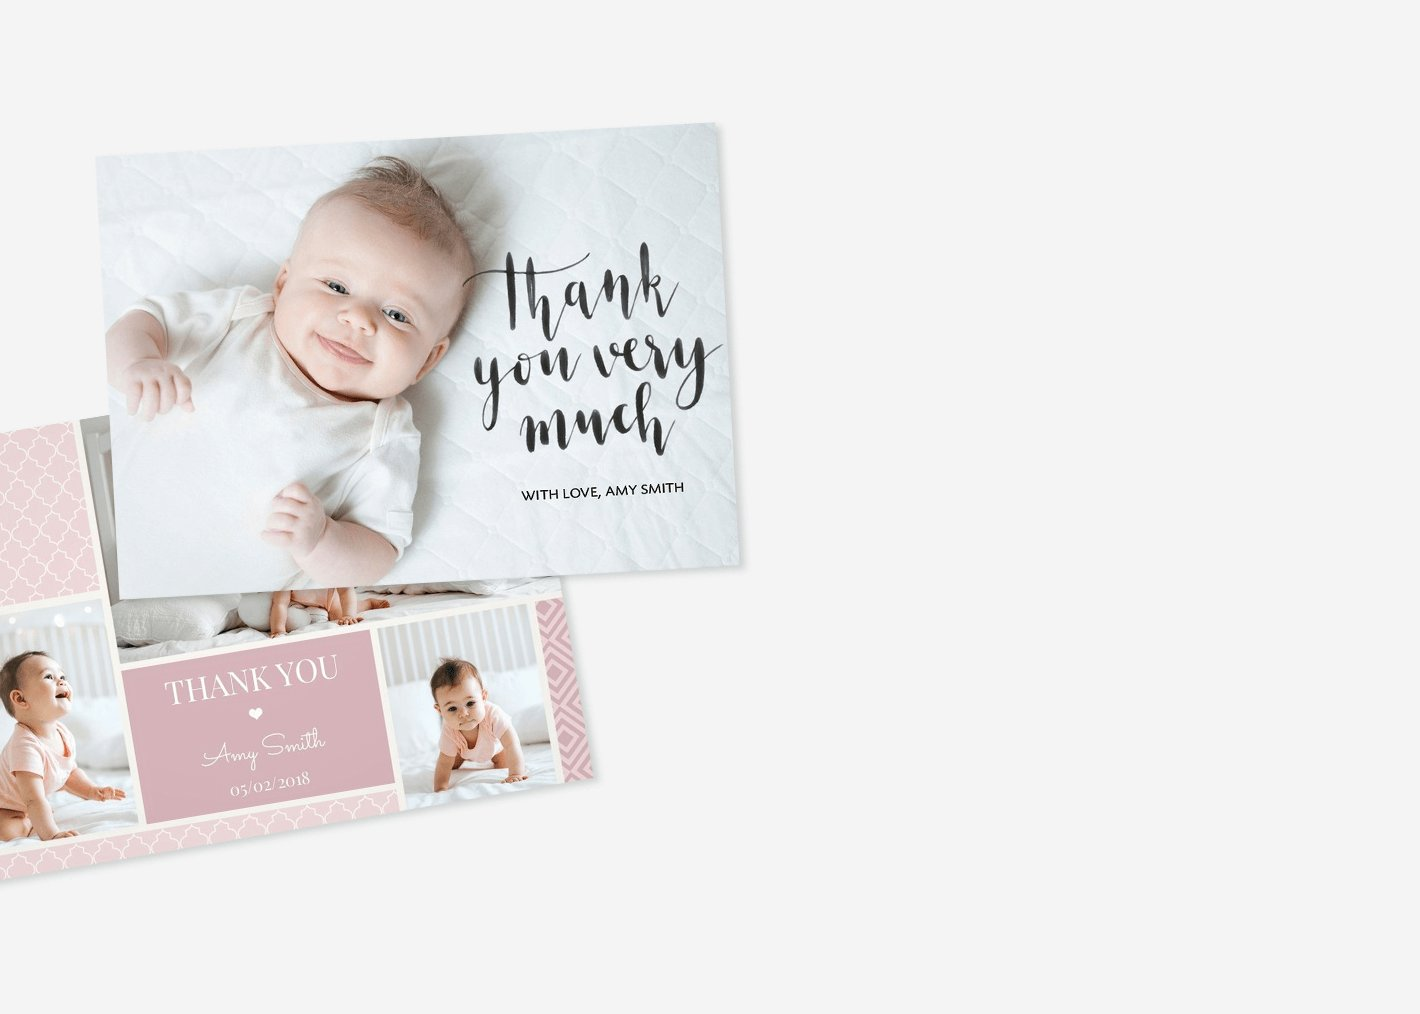 Thank You Cards Personalised With Photo And Text Optimalprint Ireland